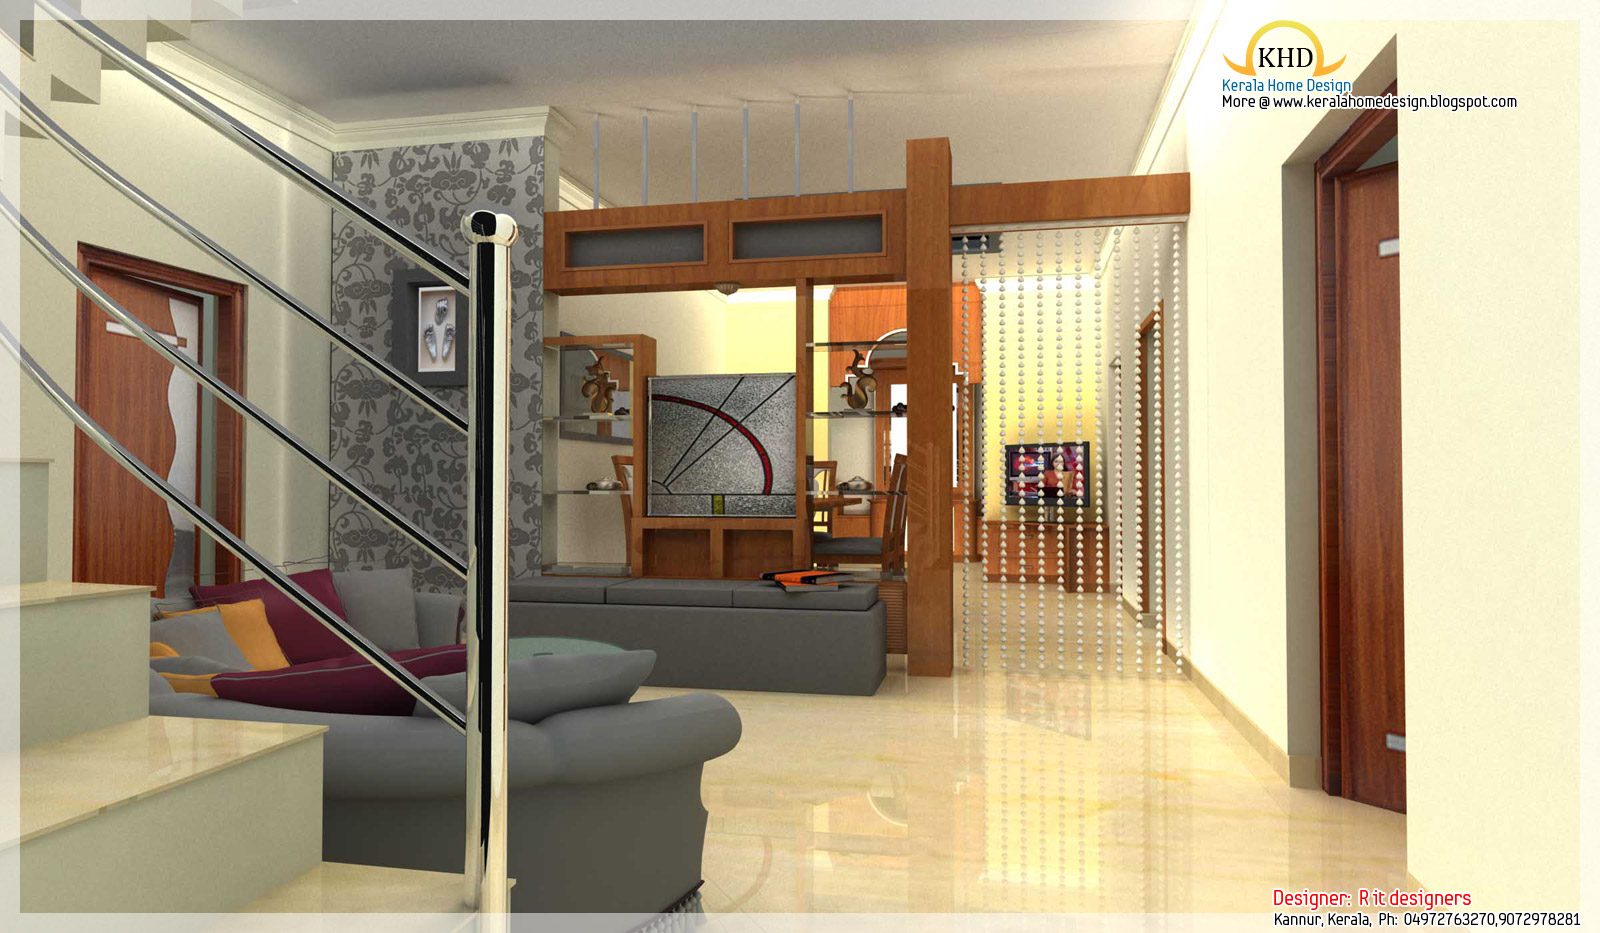 Interior design idea renderings kerala home design and for Home plans with interior photos